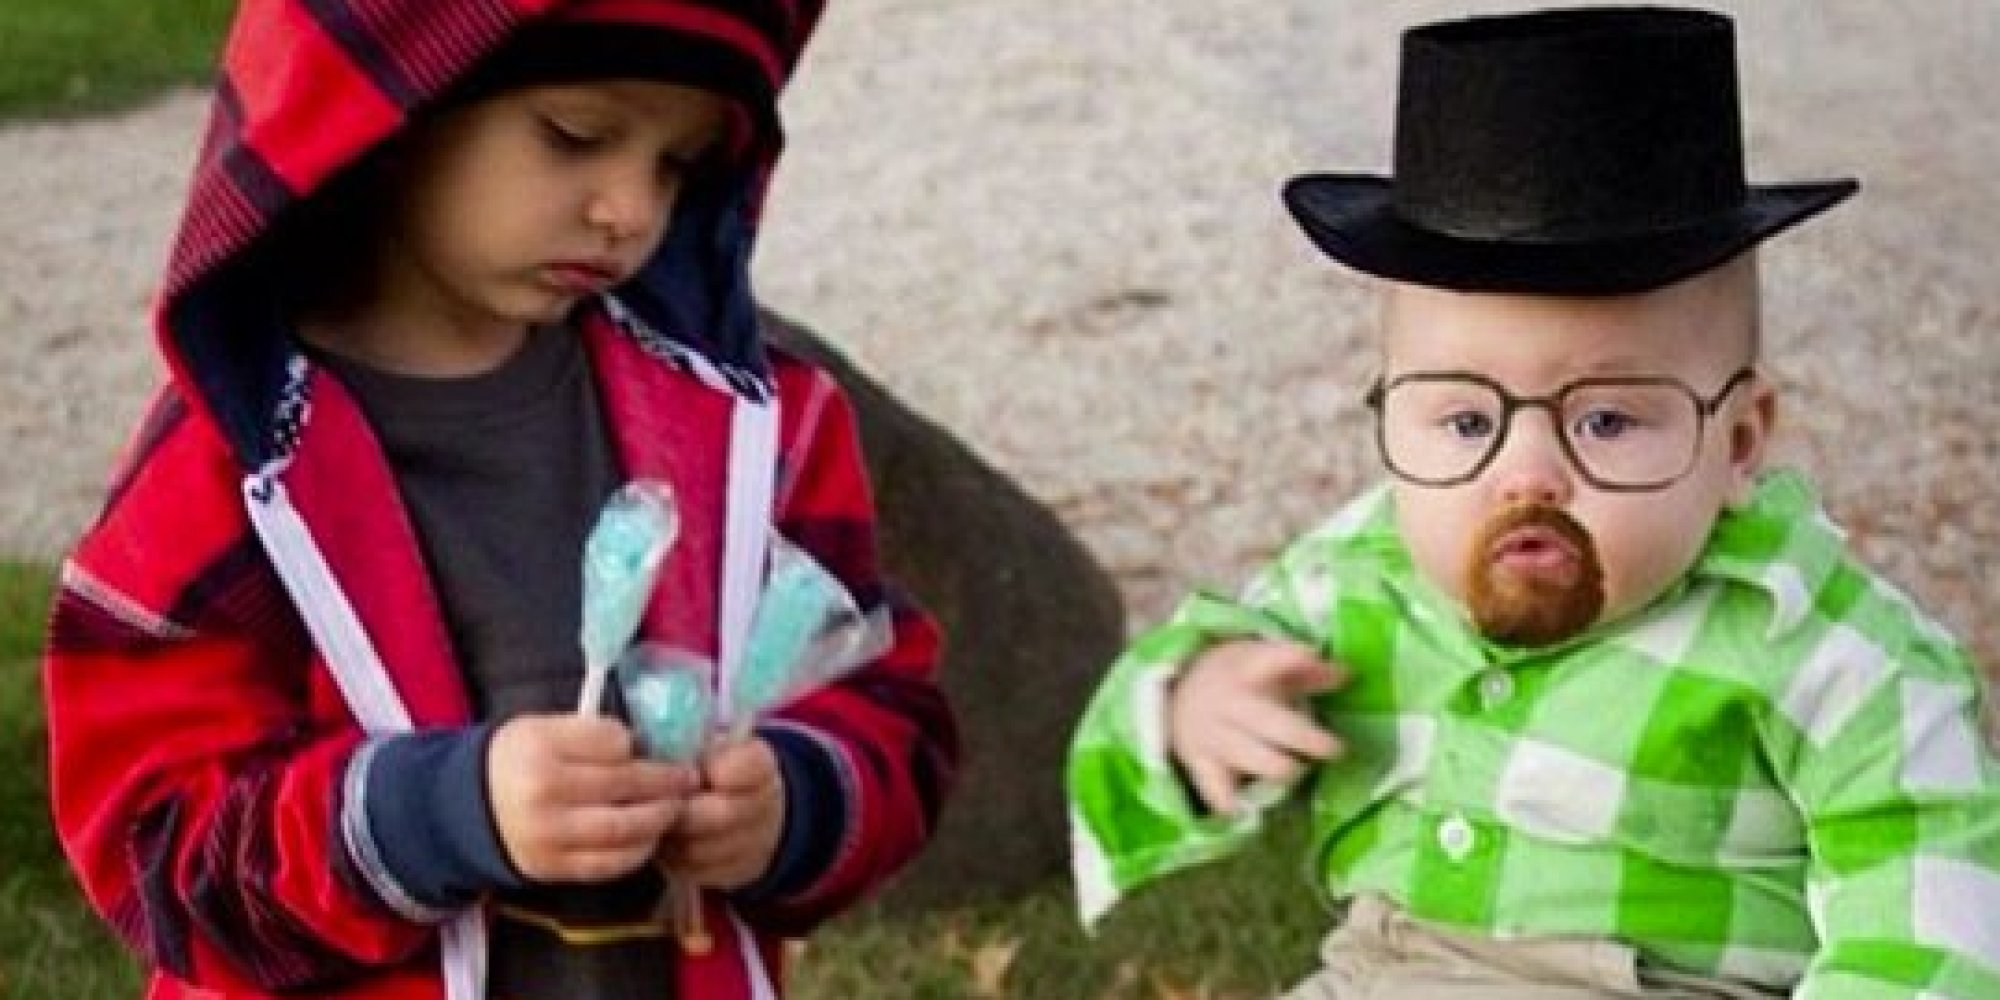 this baby dressed as walter white has the best halloween costume ever picture huffpost uk - Halloween Costume Breaking Bad